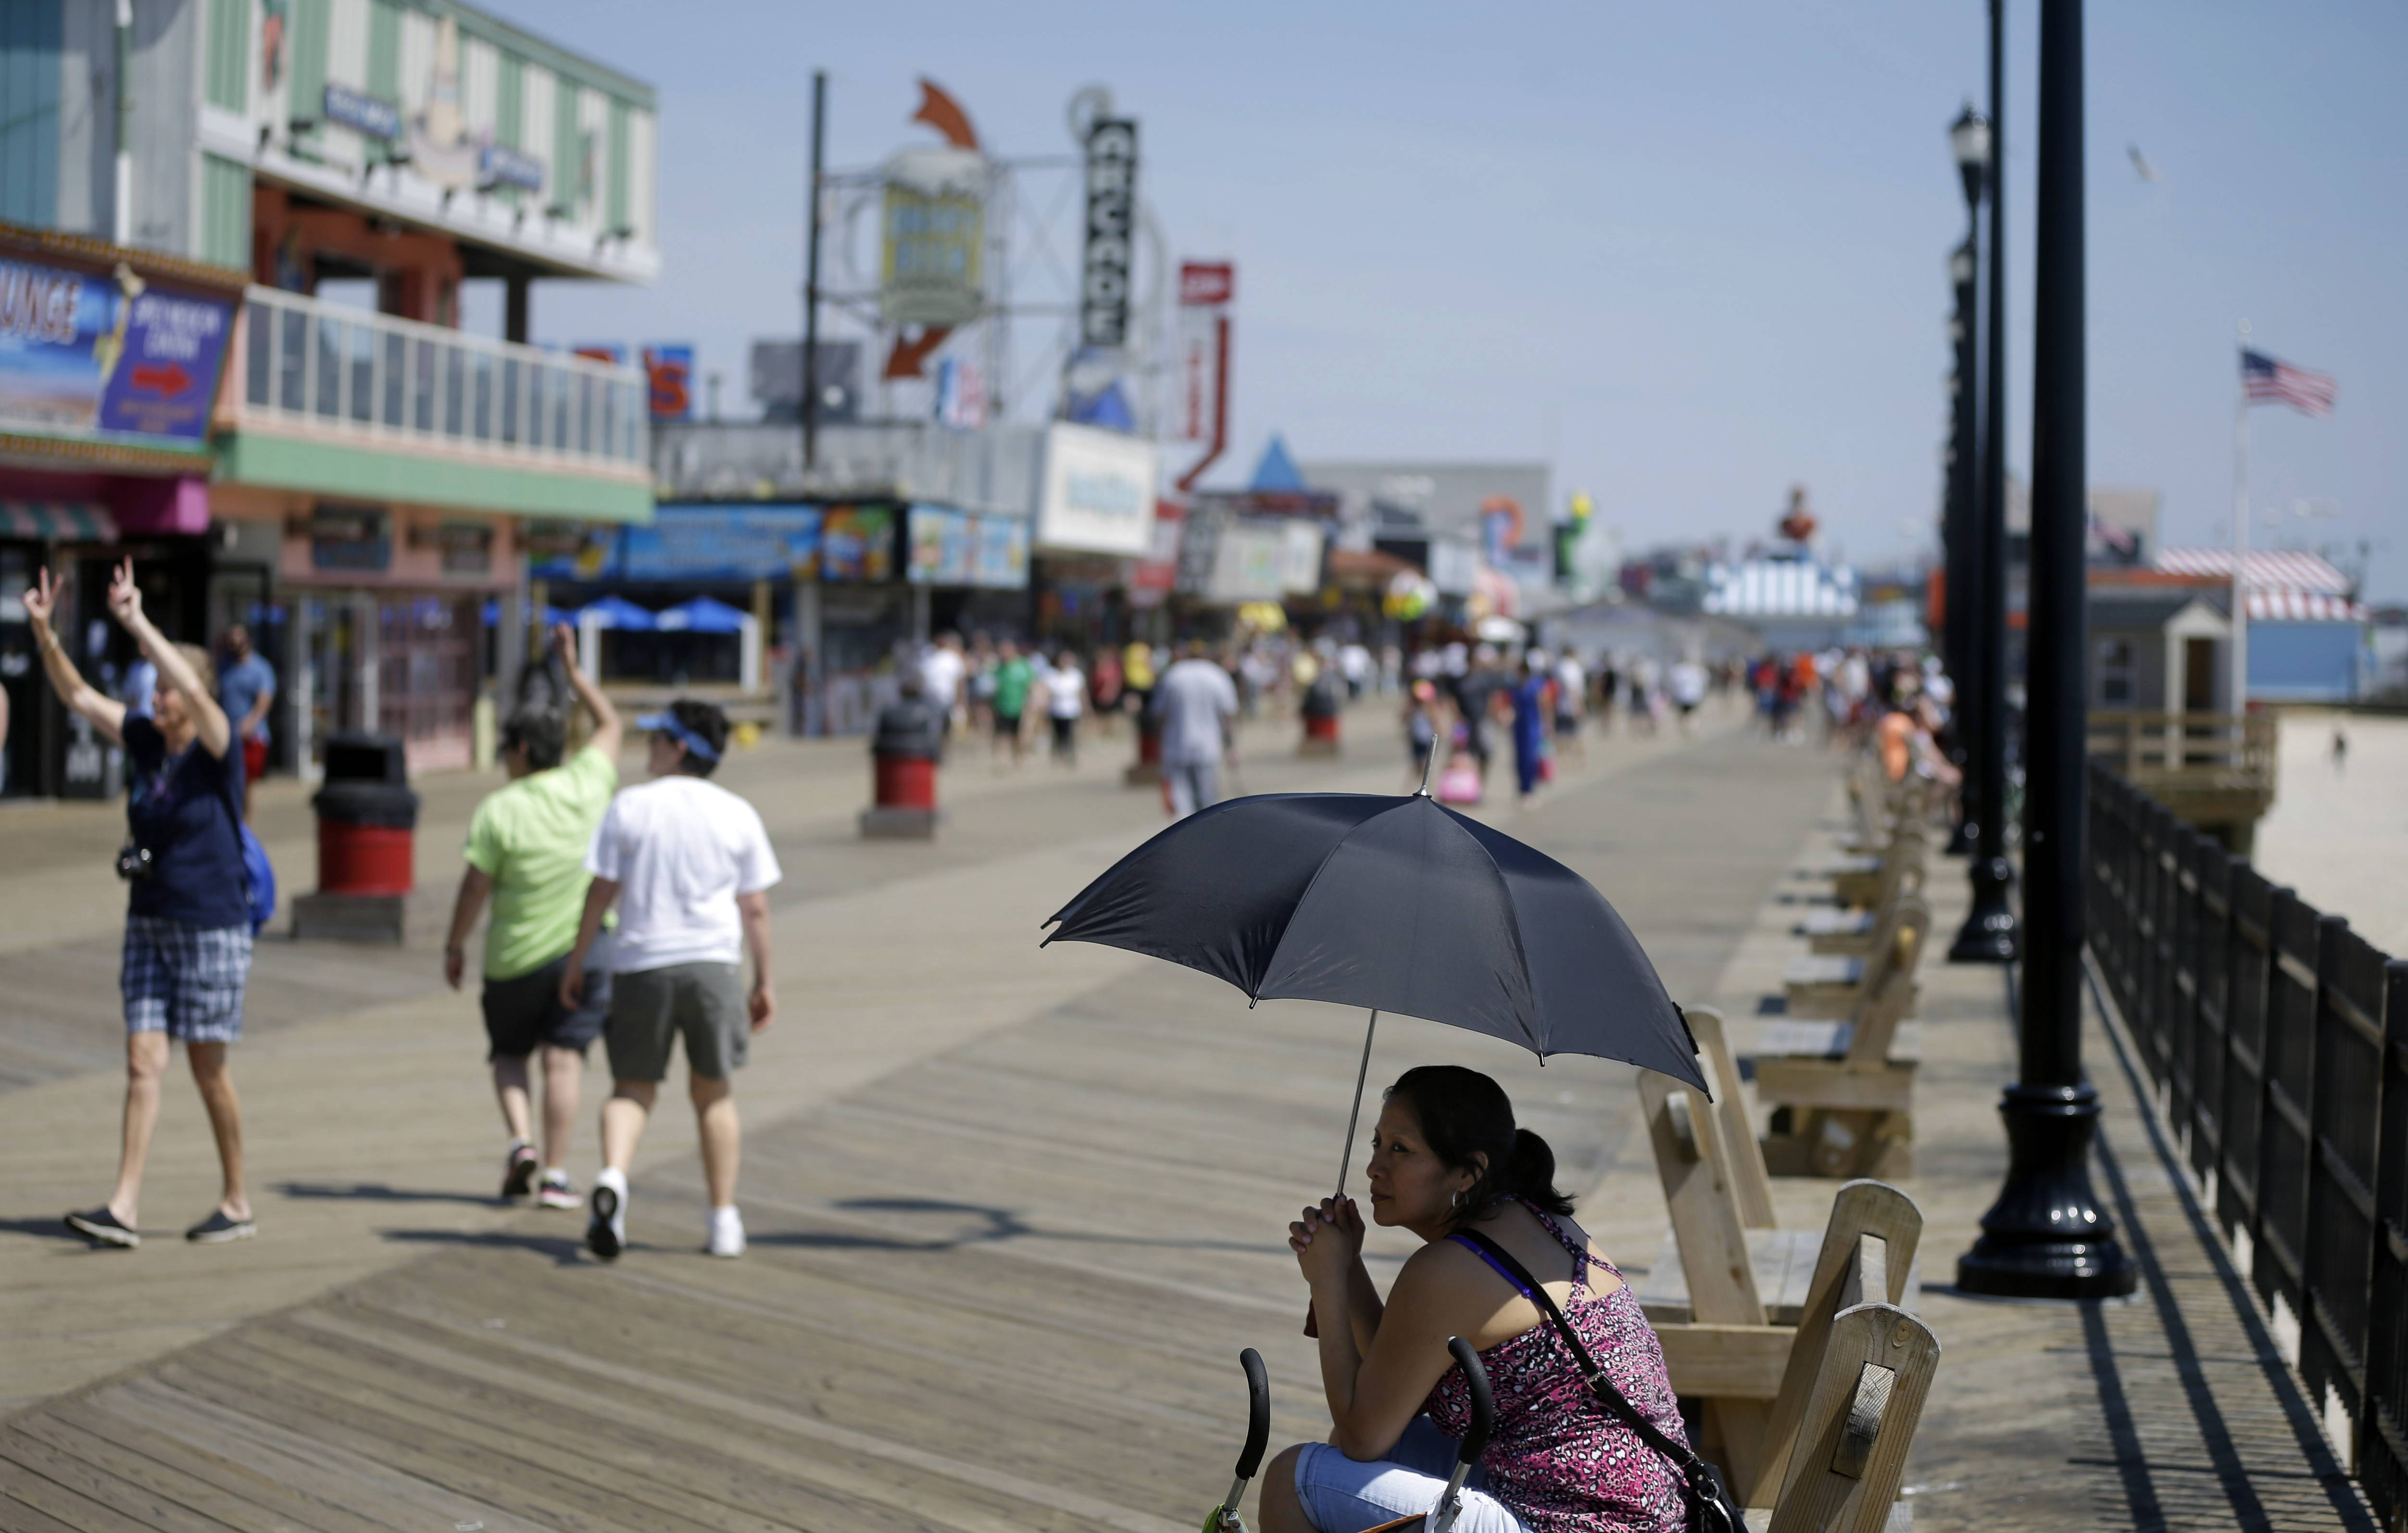 A woman seeks shade under an umbrella along the boardwalk on Memorial Day in Seaside Heights, N.J. There's no better place to engage in people-watching than on the boardwalks of the Jersey shore, and almost all of them are rebuilt and good as new in the second summer after Superstorm Sandy.